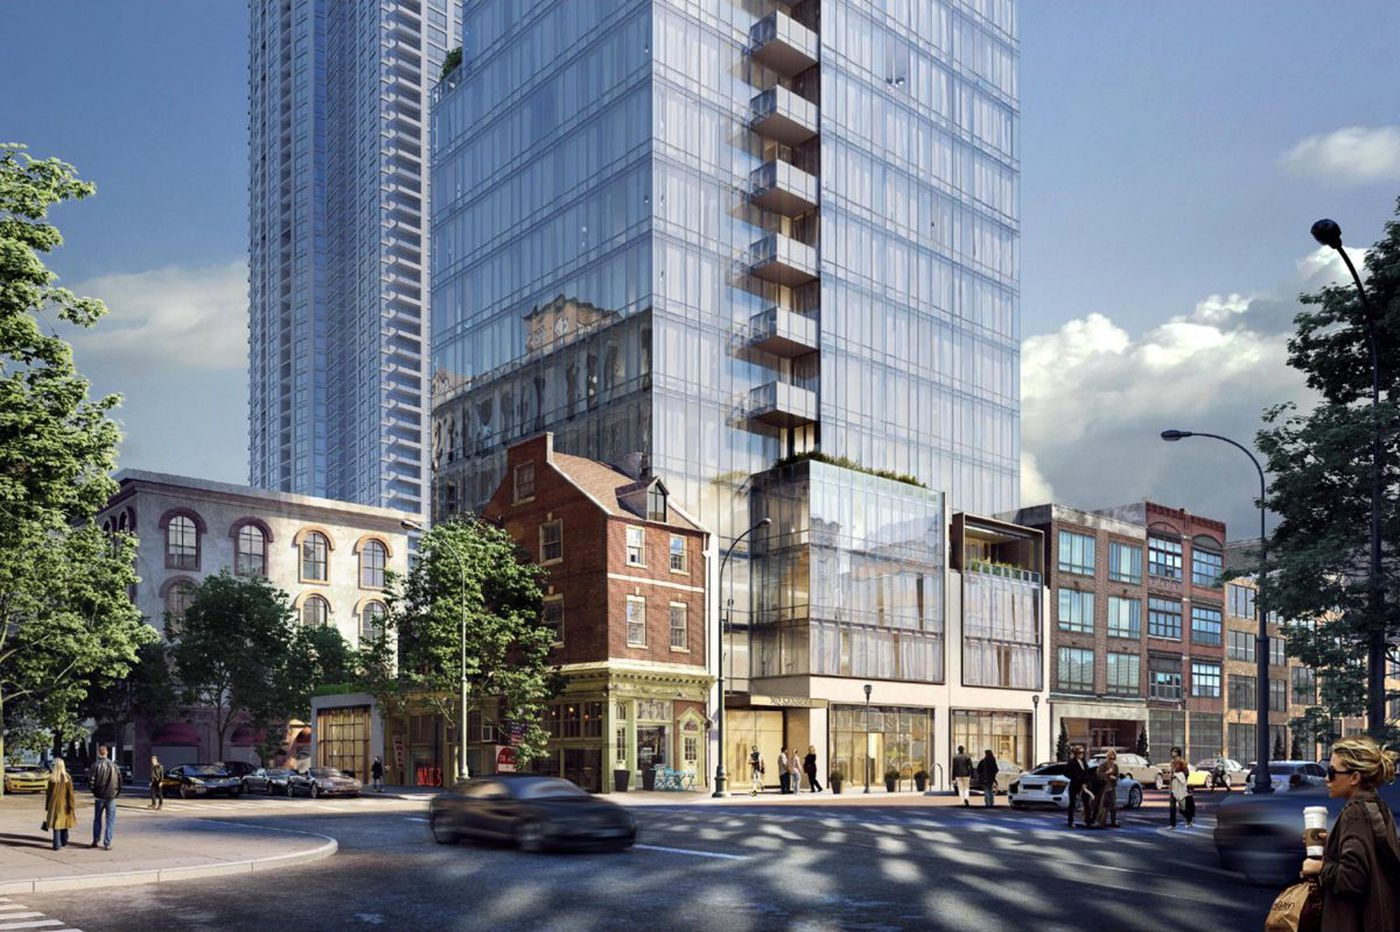 Builder Toll Brothers completes Jewelers' Row property purchases for condo tower plan